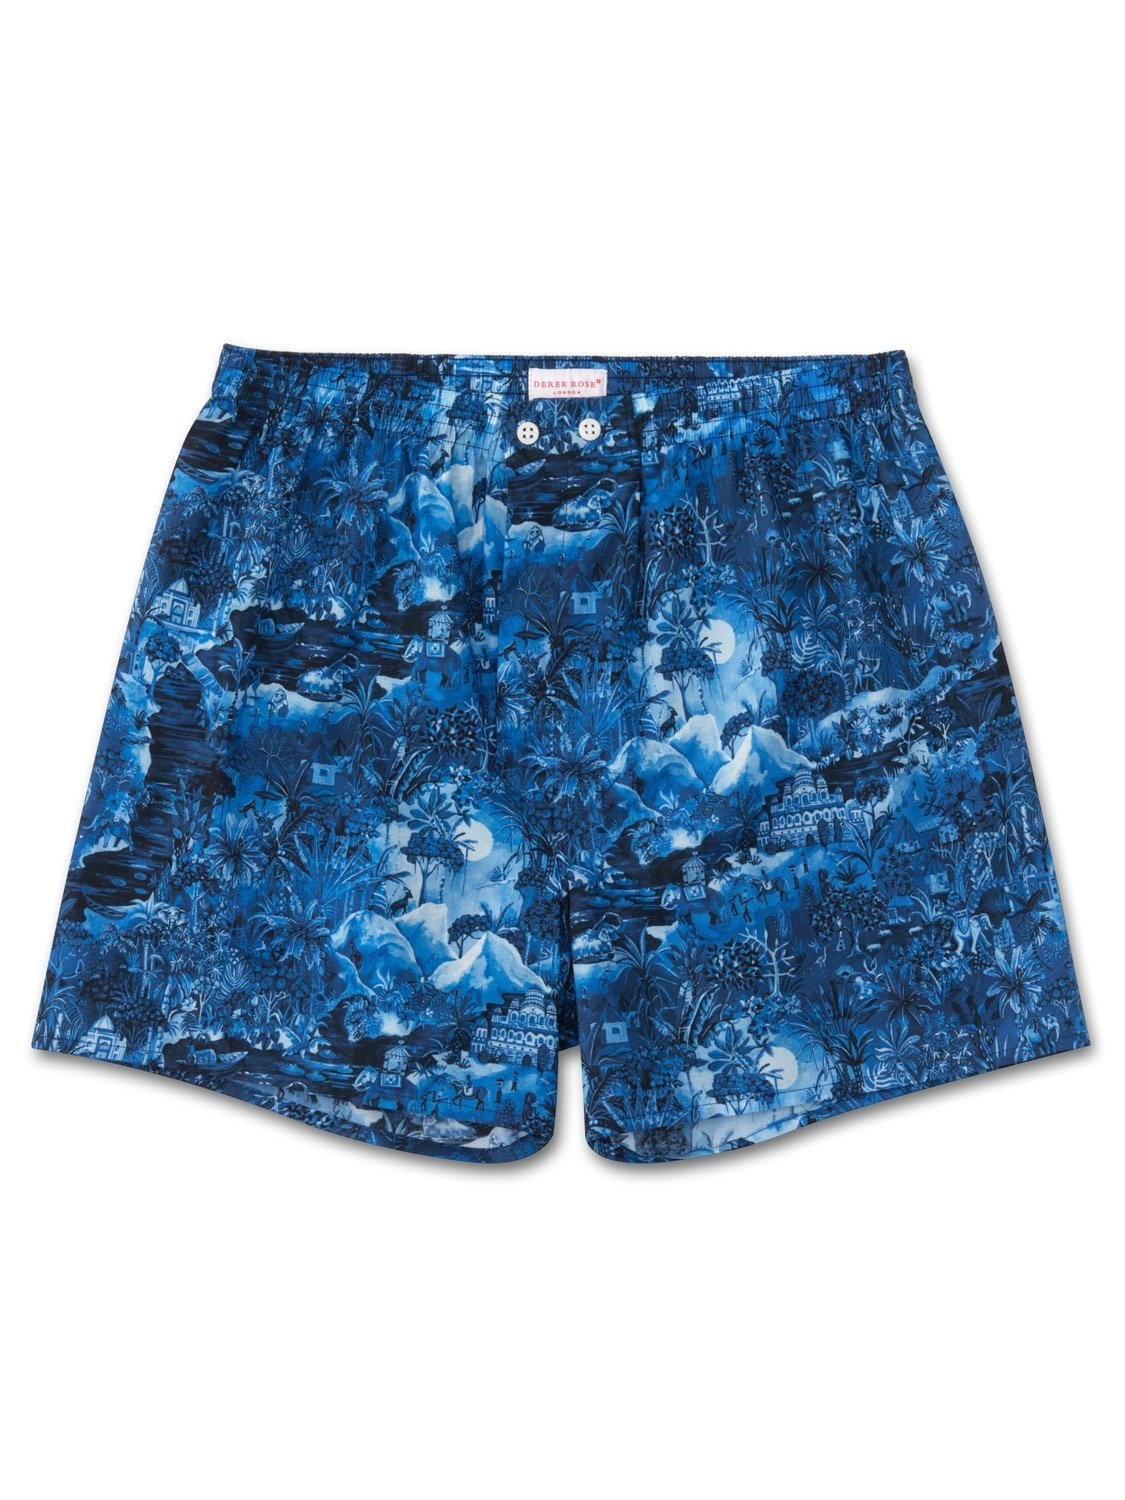 Men's Classic Fit Boxer Shorts Ledbury 10 Cotton Batiste Blue